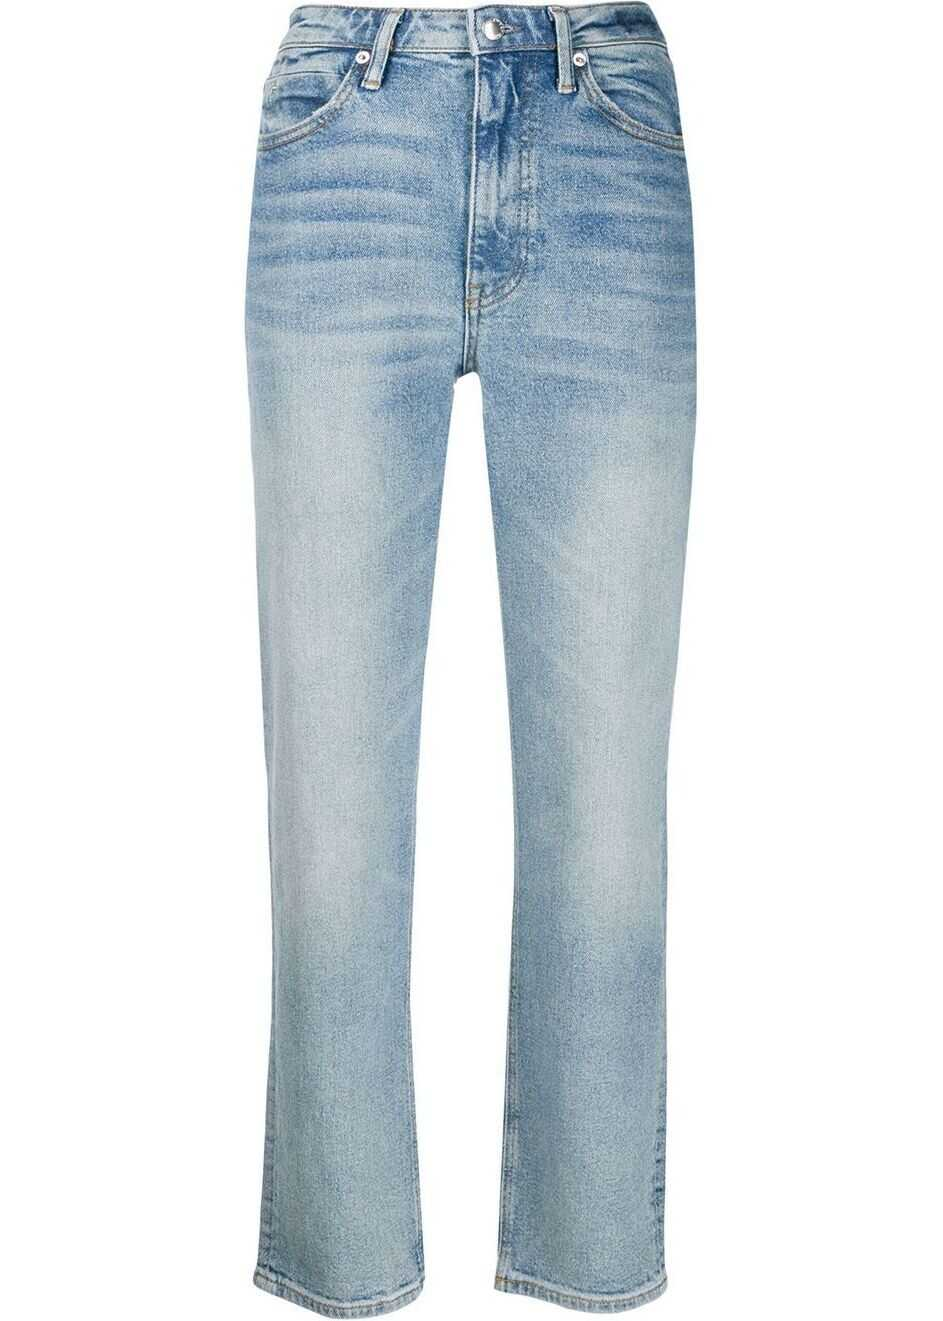 Alexander Wang Cotton Jeans LIGHT BLUE